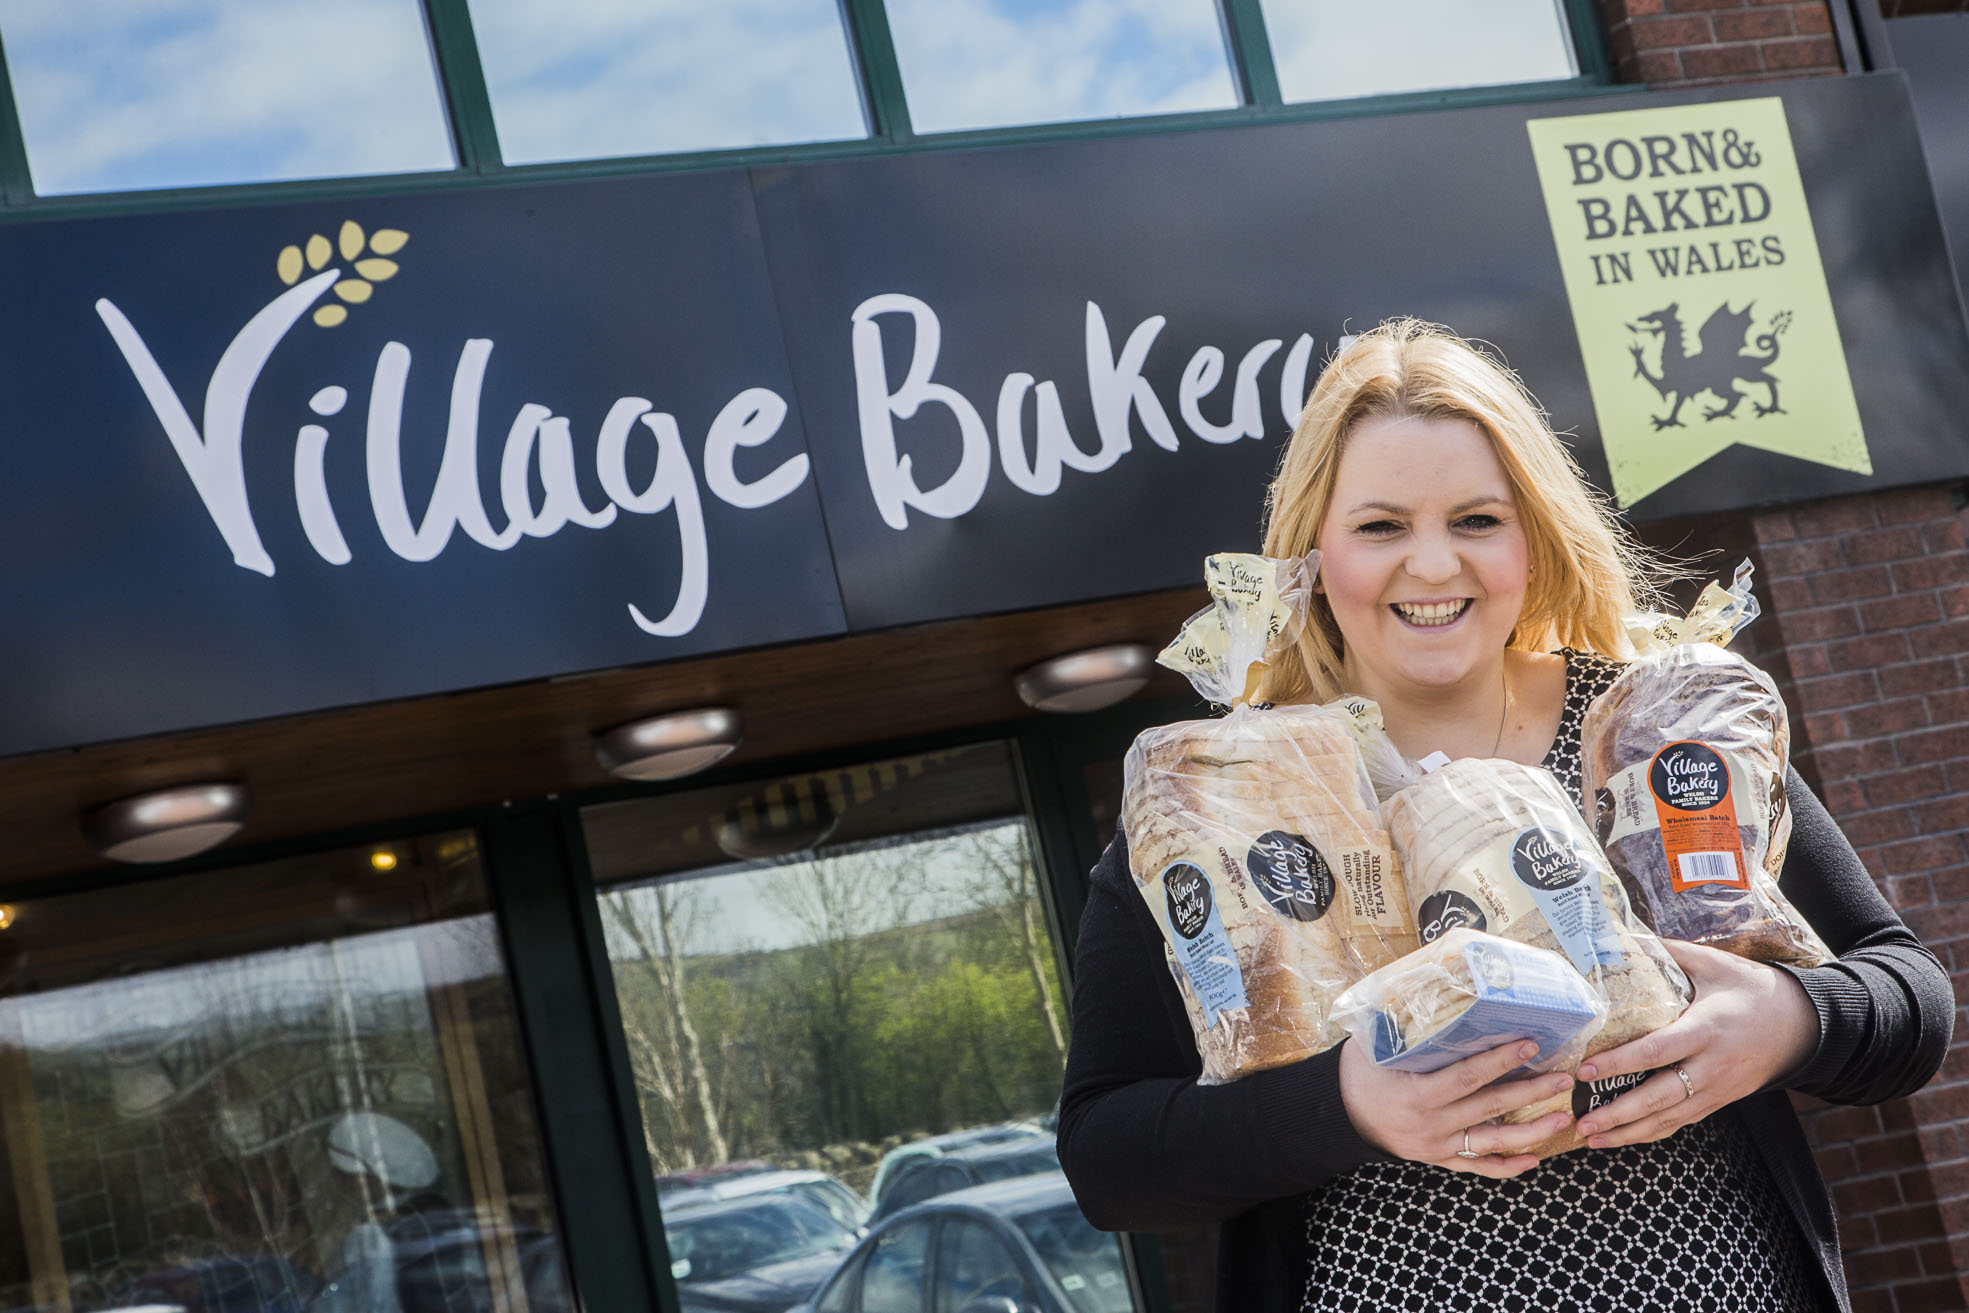 Catherine Bletcher from Village Bakery with Tesco-bound bread products